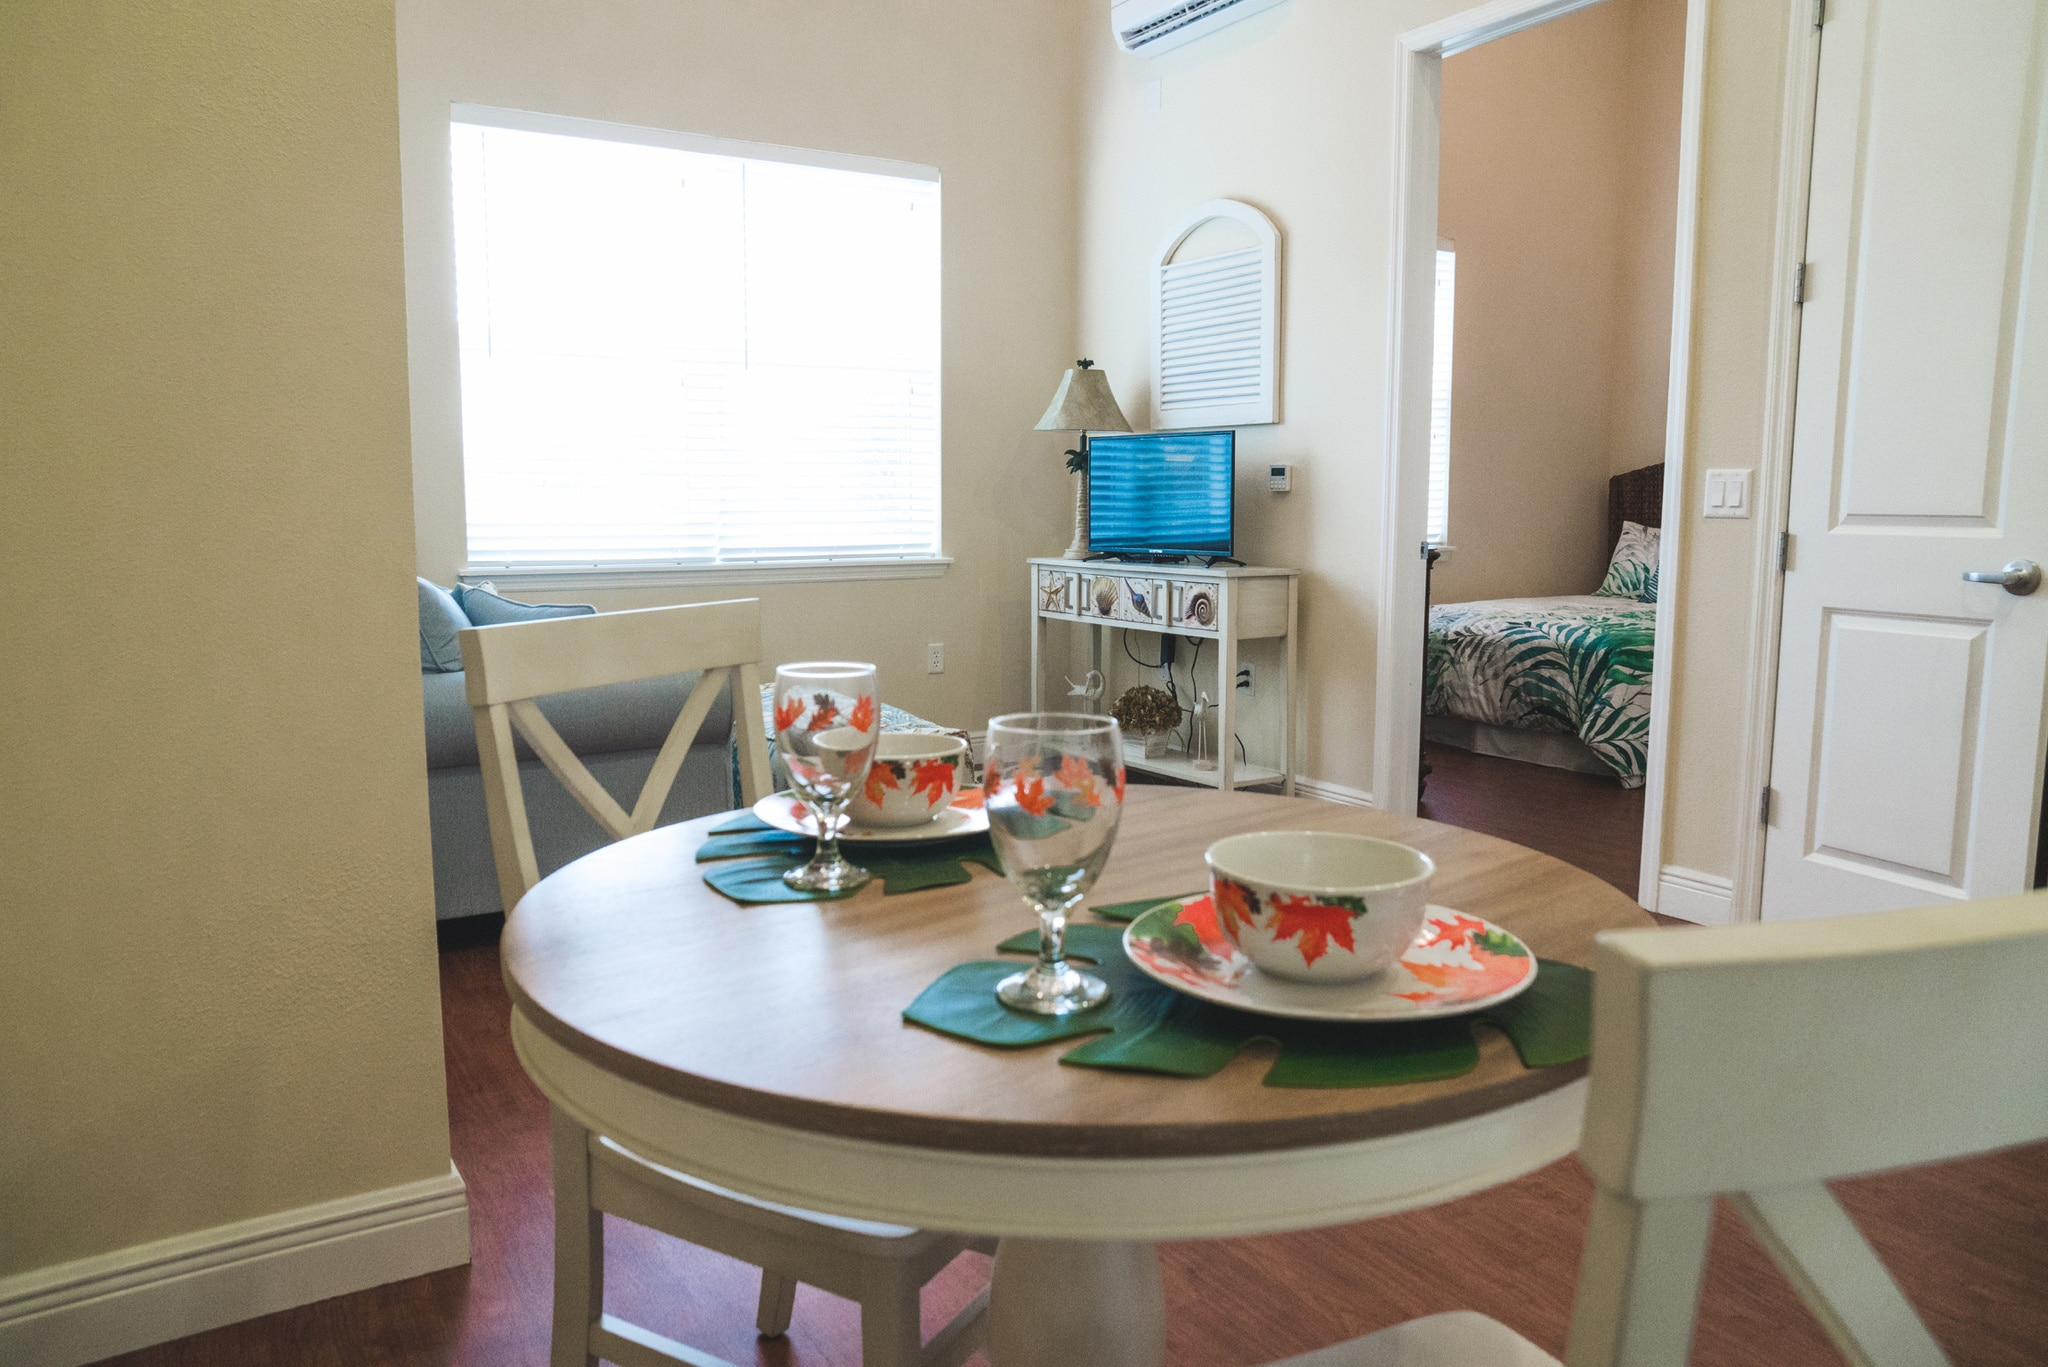 This model dining room helps potential residents see how they can decorate their apartments to their taste.